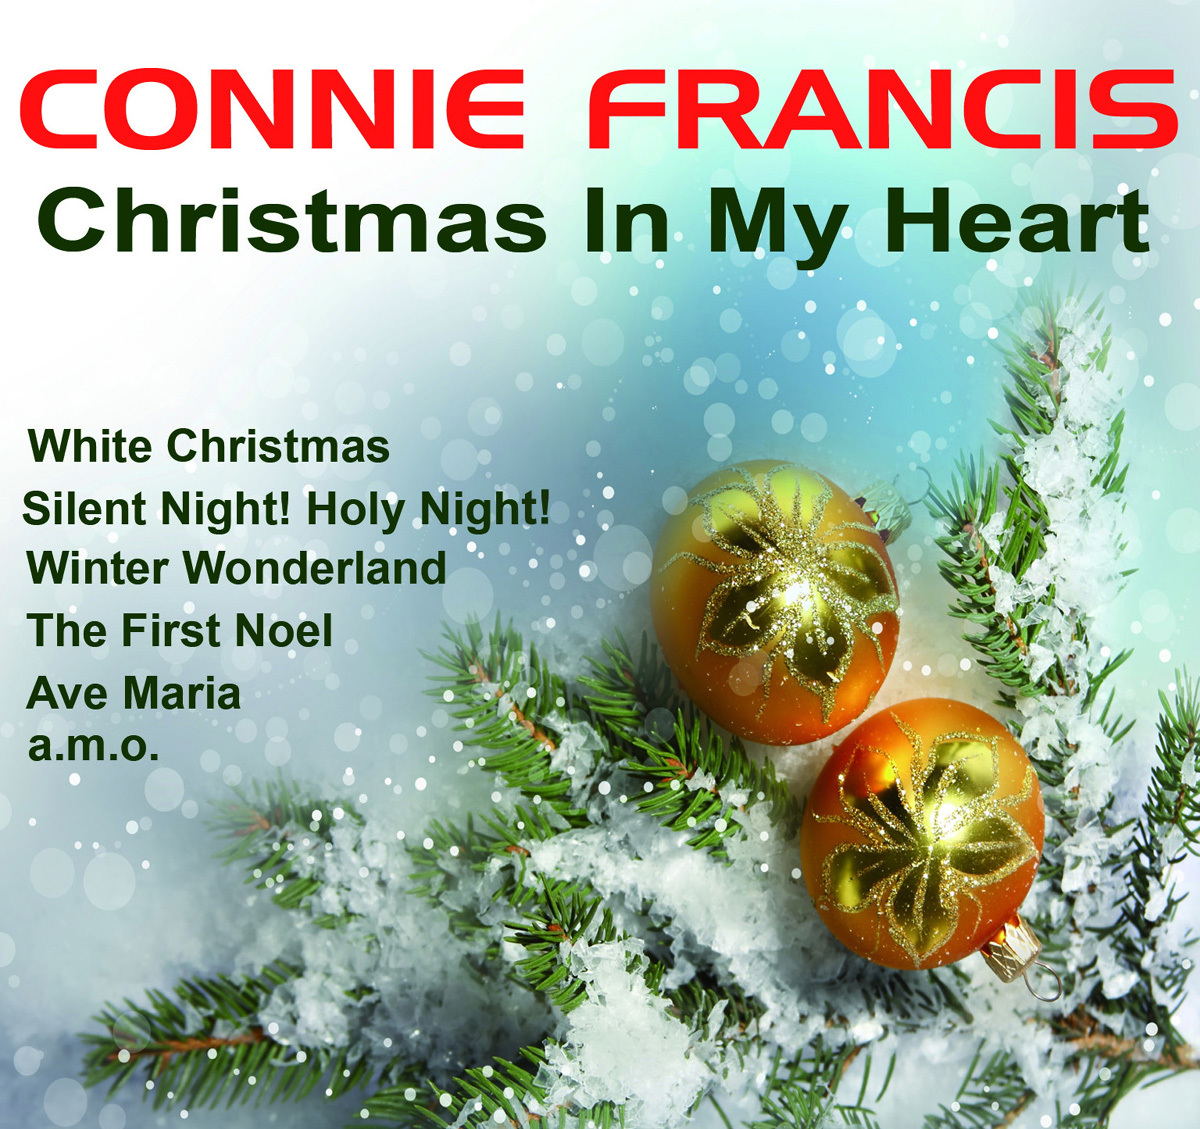 Connie Francis The Twelve Days Of Christmas.Connie Francis Radio Listen To Free Music Get The Latest Info